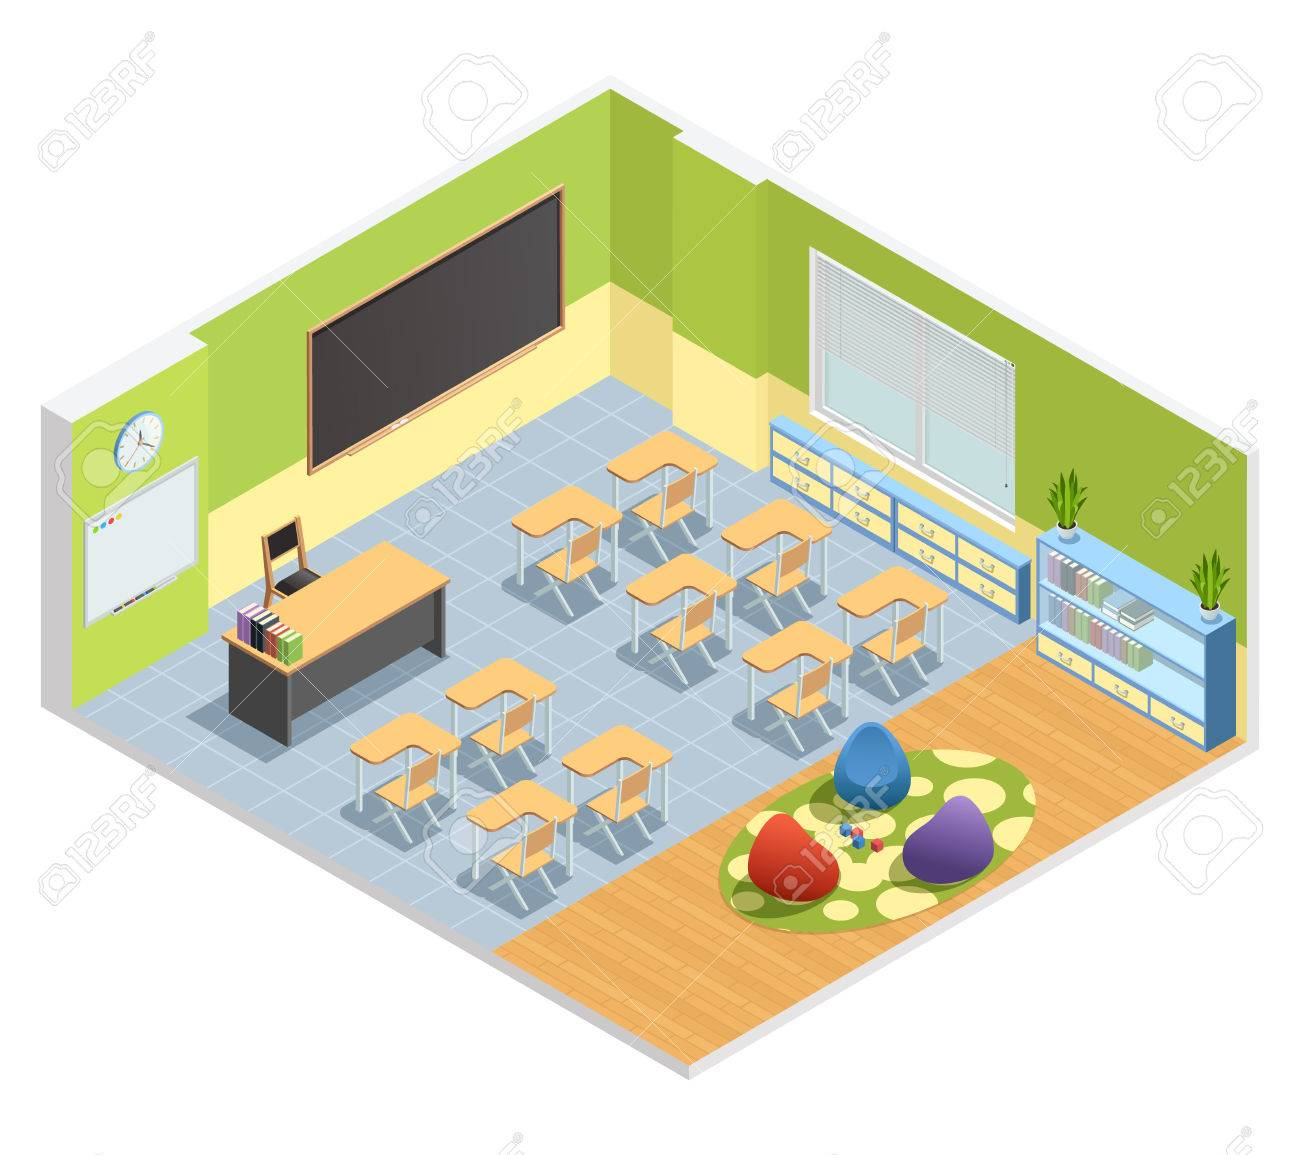 Isometric Poster Of Classroom With Chalkboard Table For Teacher Students  Desks And Special Zone With Playground